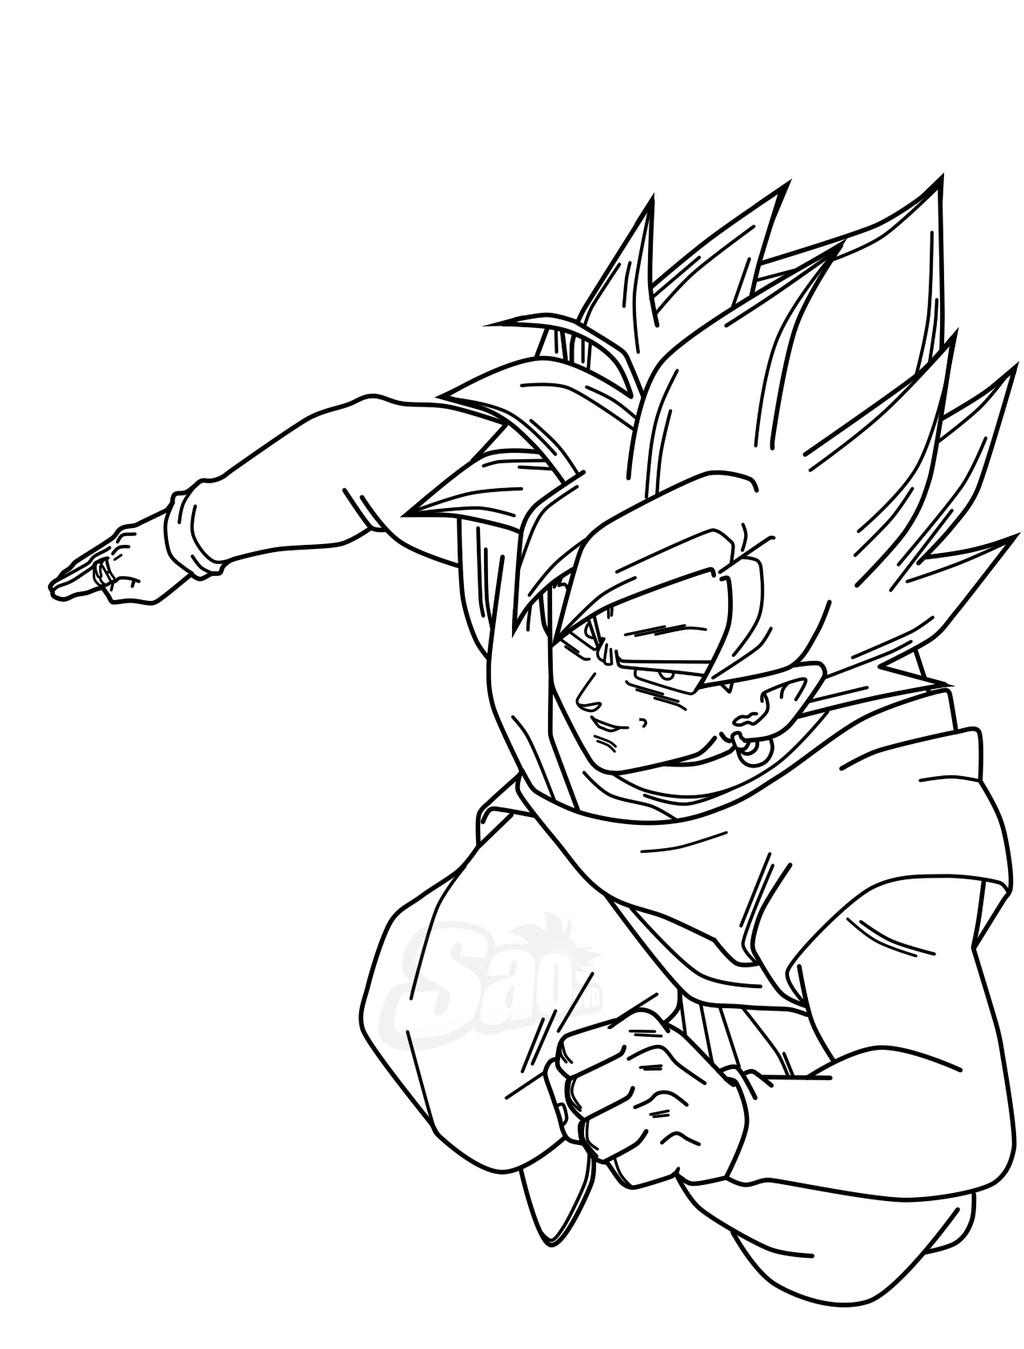 dragon ball z beerus coloring pages beerus dragon ball z coloring pages lord sketch coloring page pages beerus z dragon ball coloring